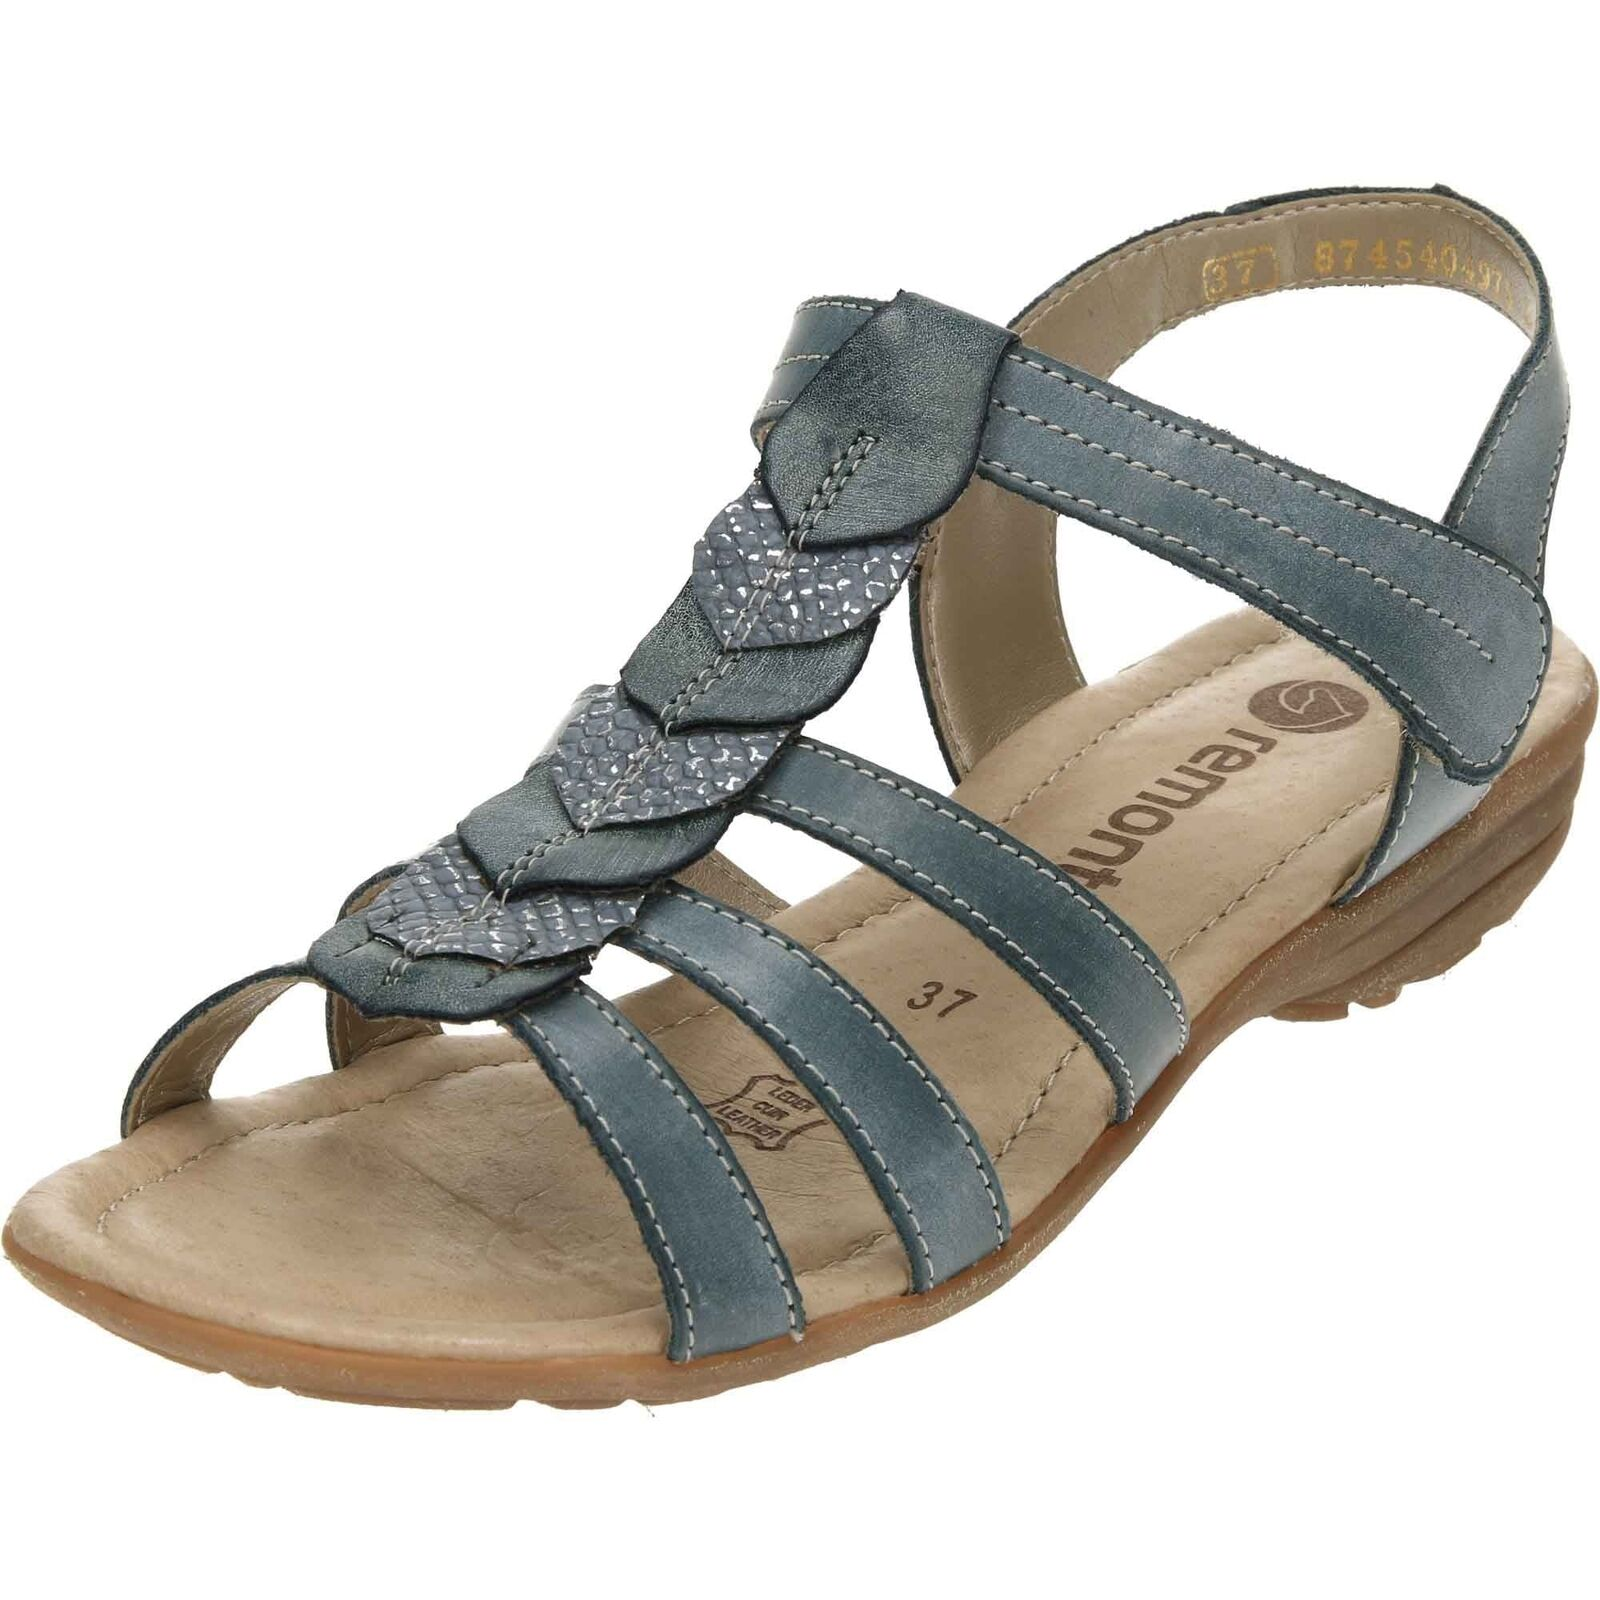 Remonte Gladiator Touch Wedge Fastening Wedge Sandals R3658 Wedge Touch Slip On Strap Shoes da2e01